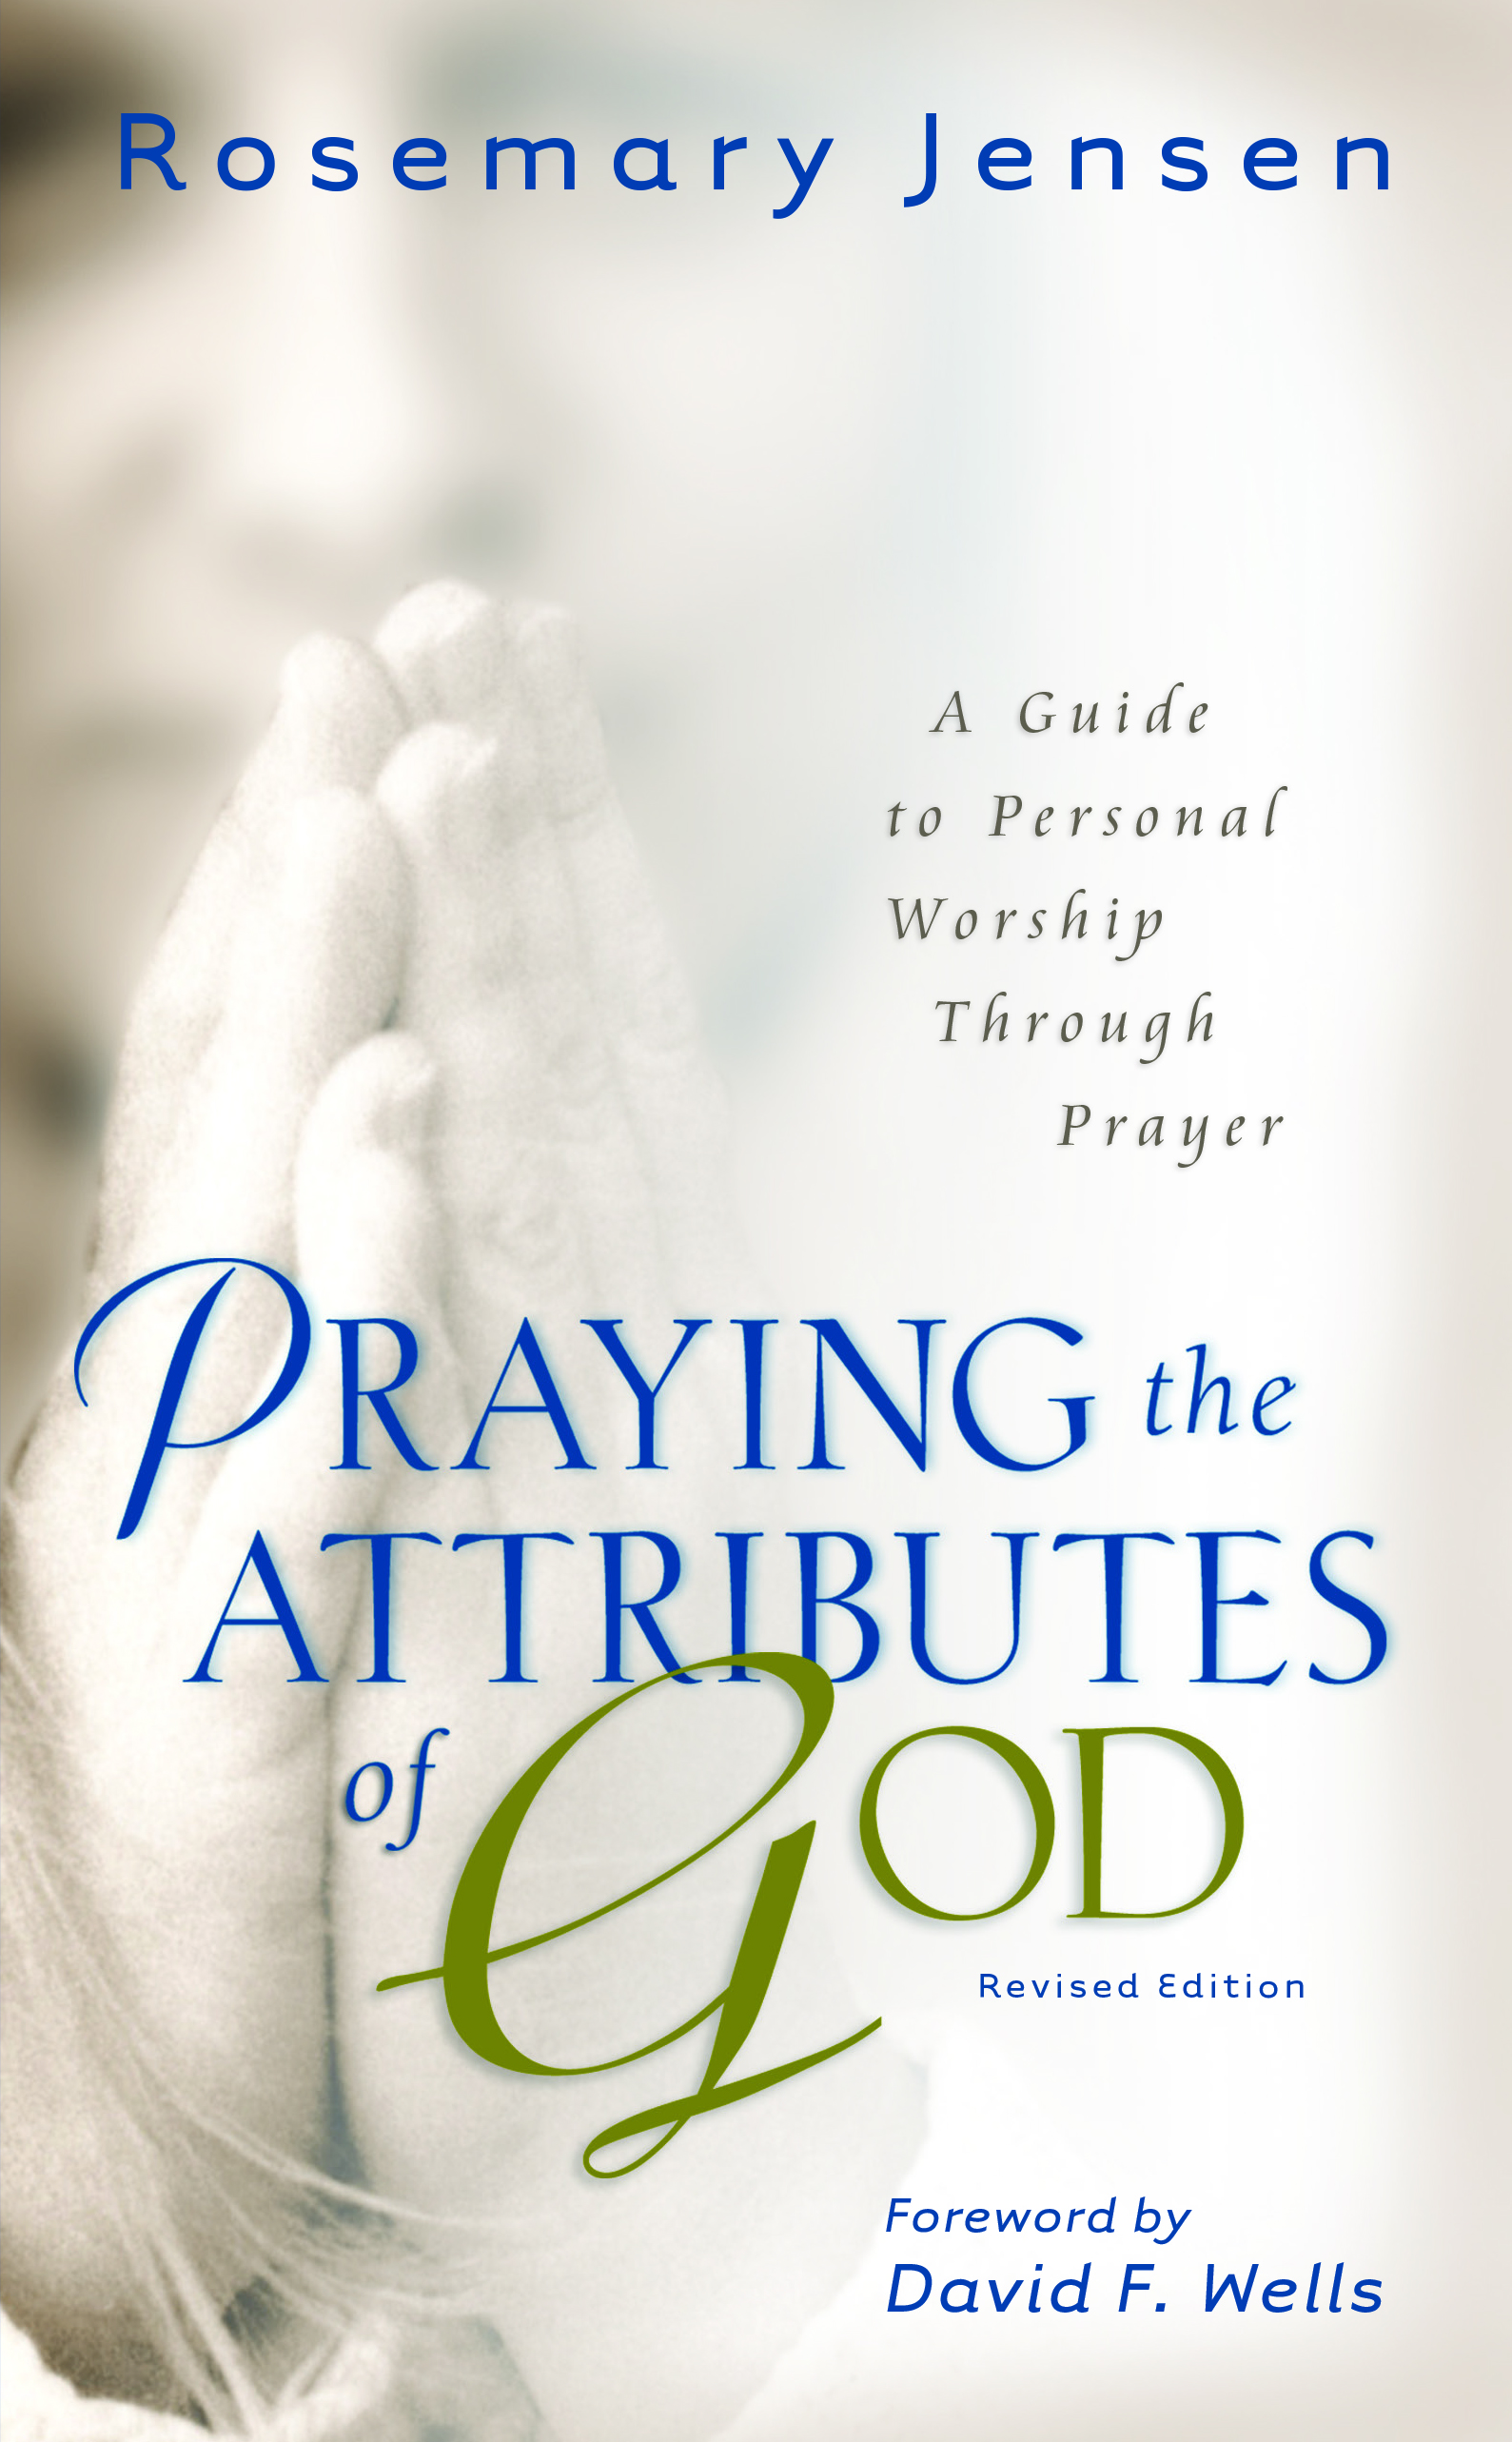 Praying the Attributes of God, rev ed